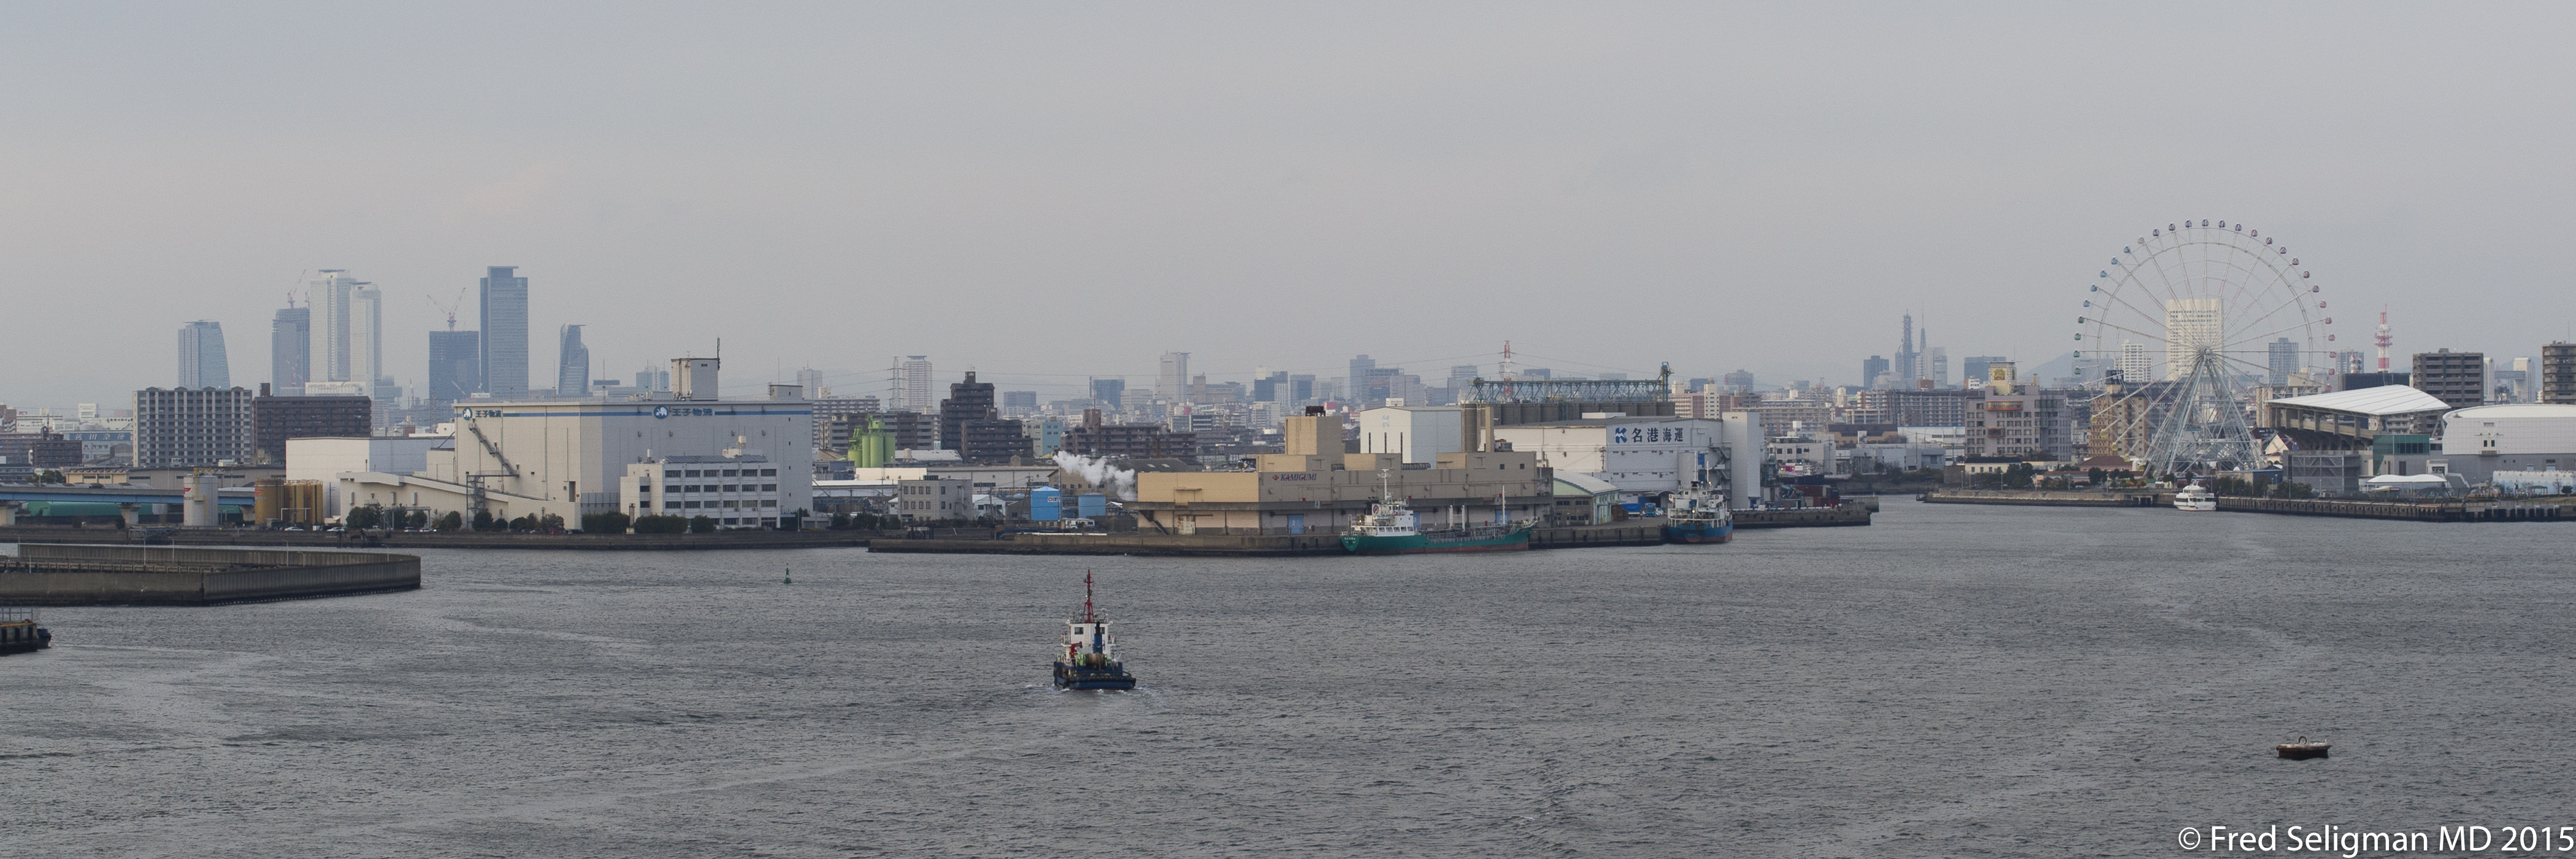 20150312_090159 D3S.jpg - Nagoya from harbor